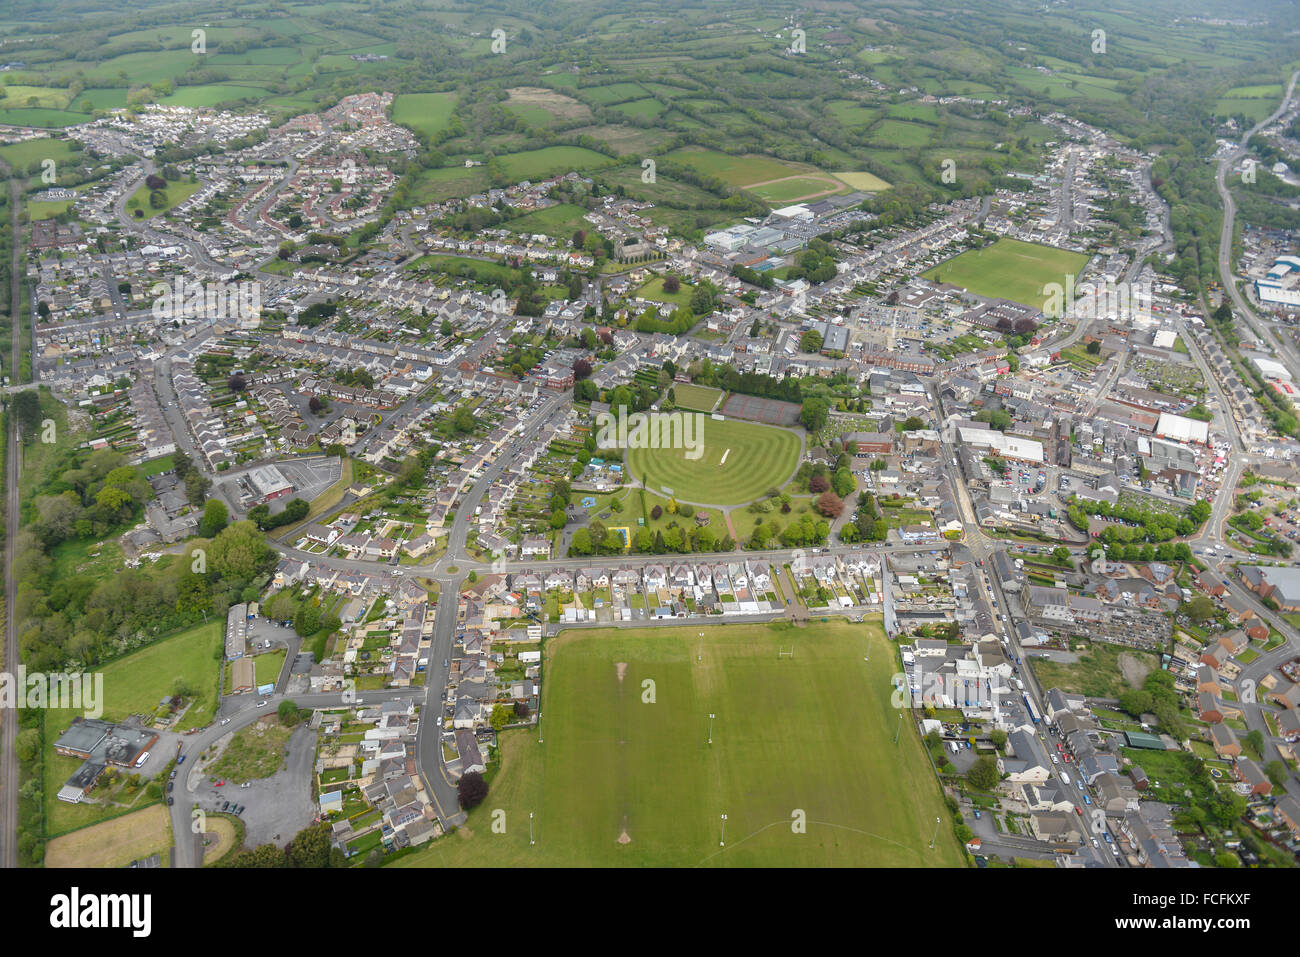 An aerial view of Ammanford a town in Carmarthenshire, Wales - Stock Image